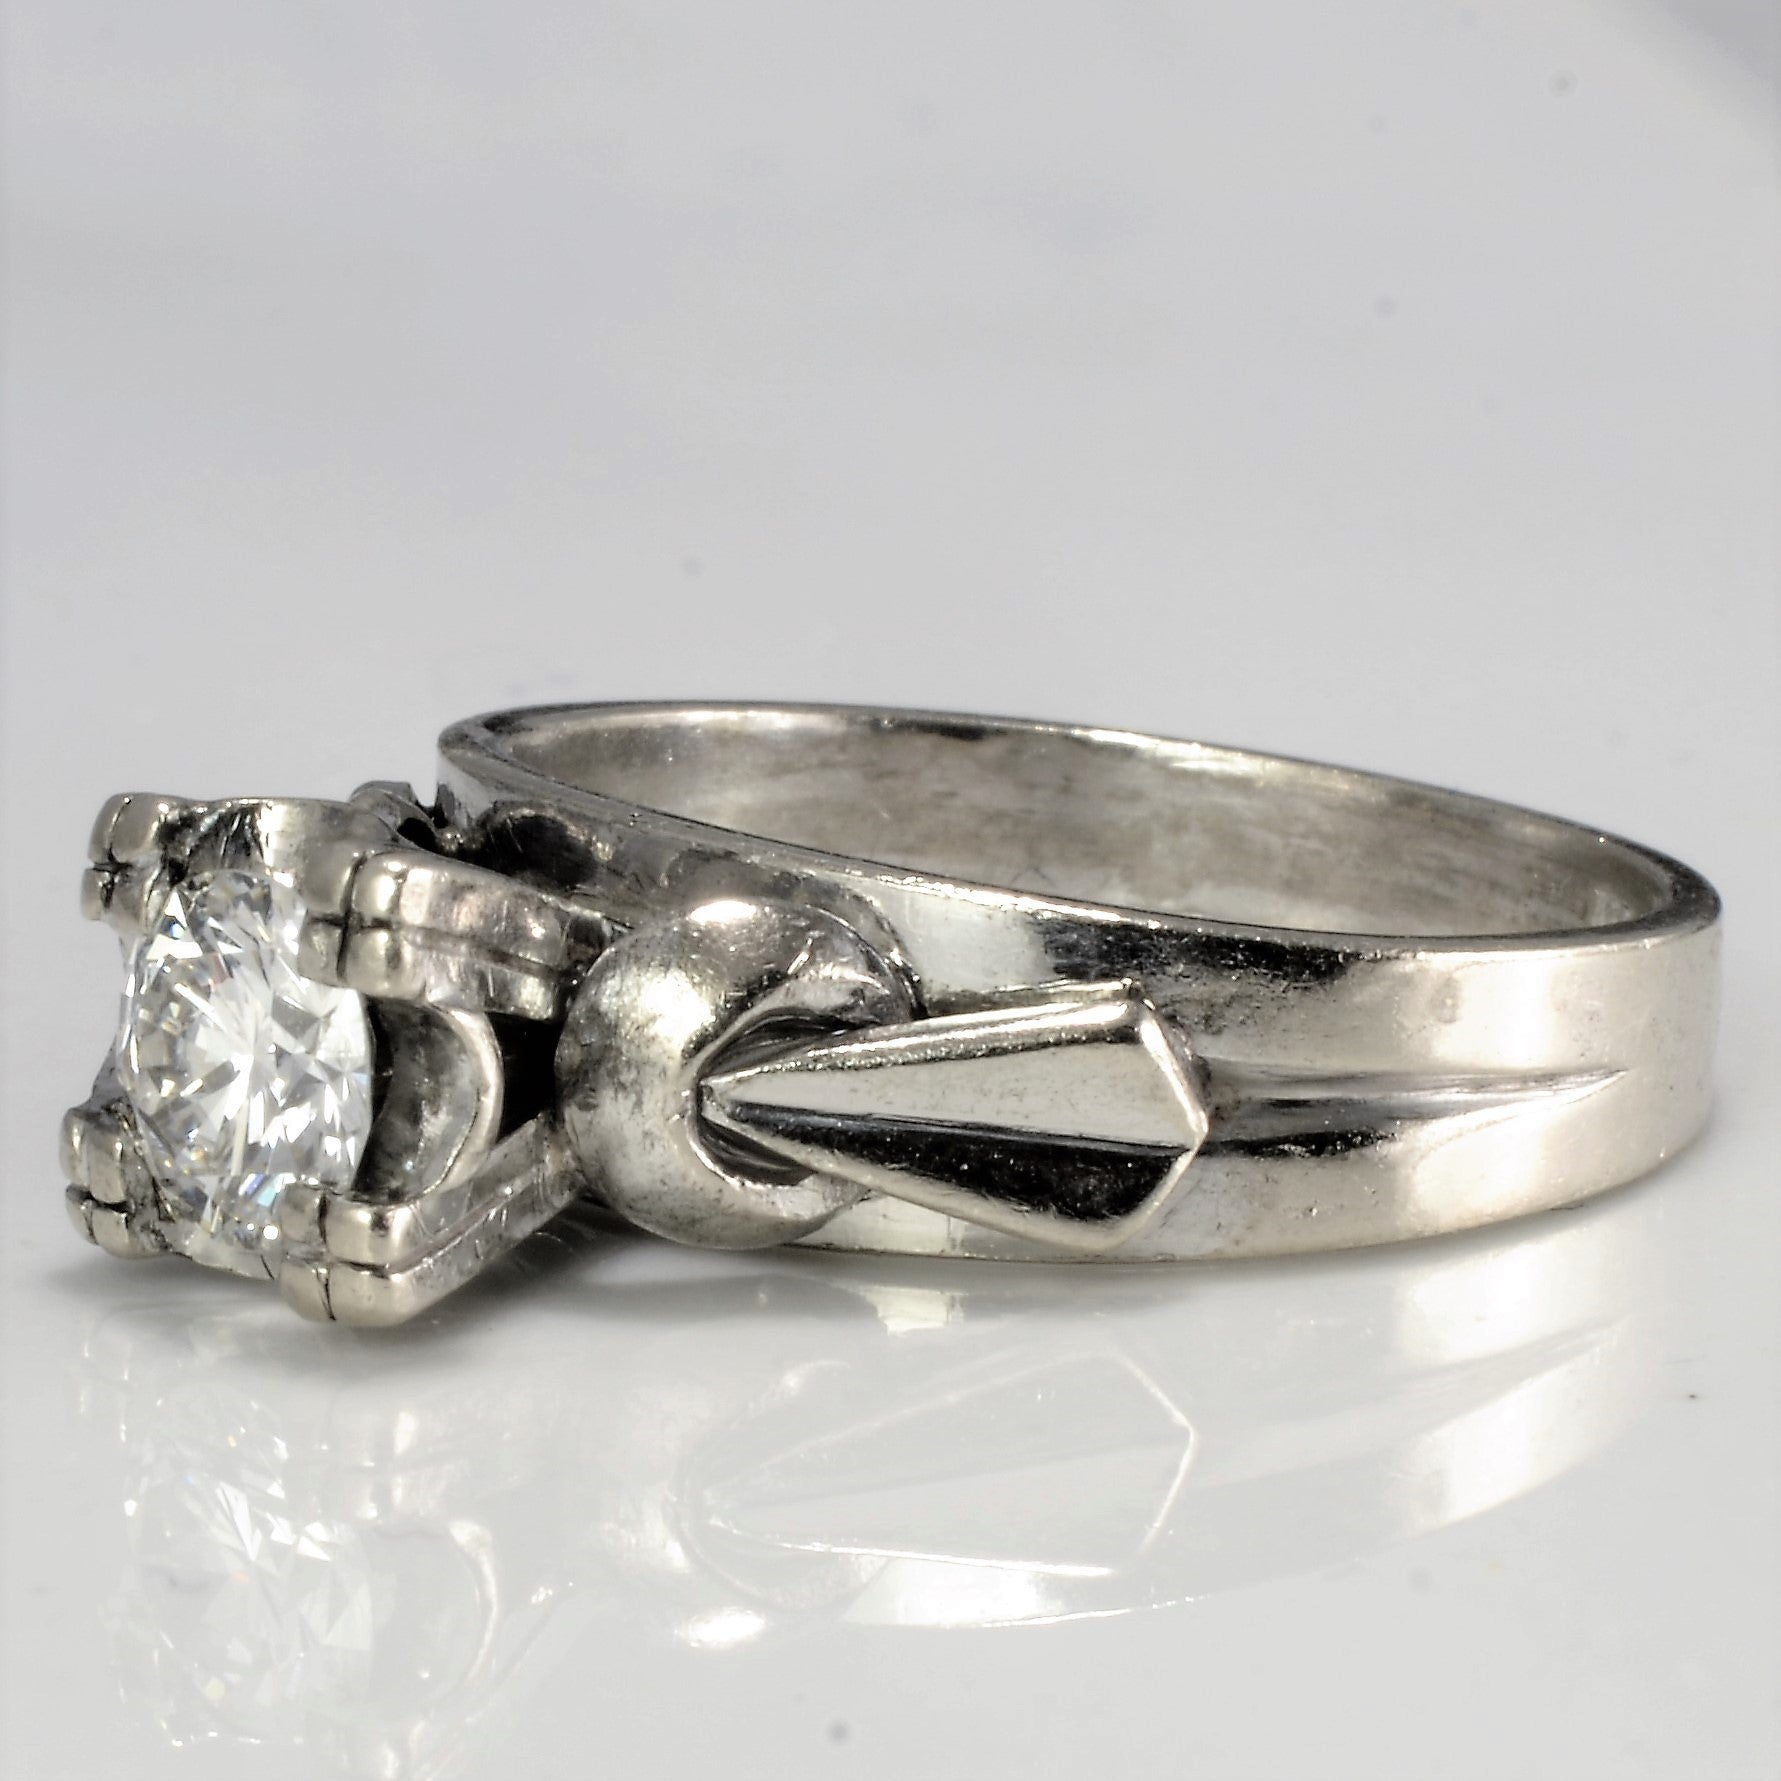 High Set Solitaire Diamond Engagement Ring | 0.45 ct, SZ 6 |